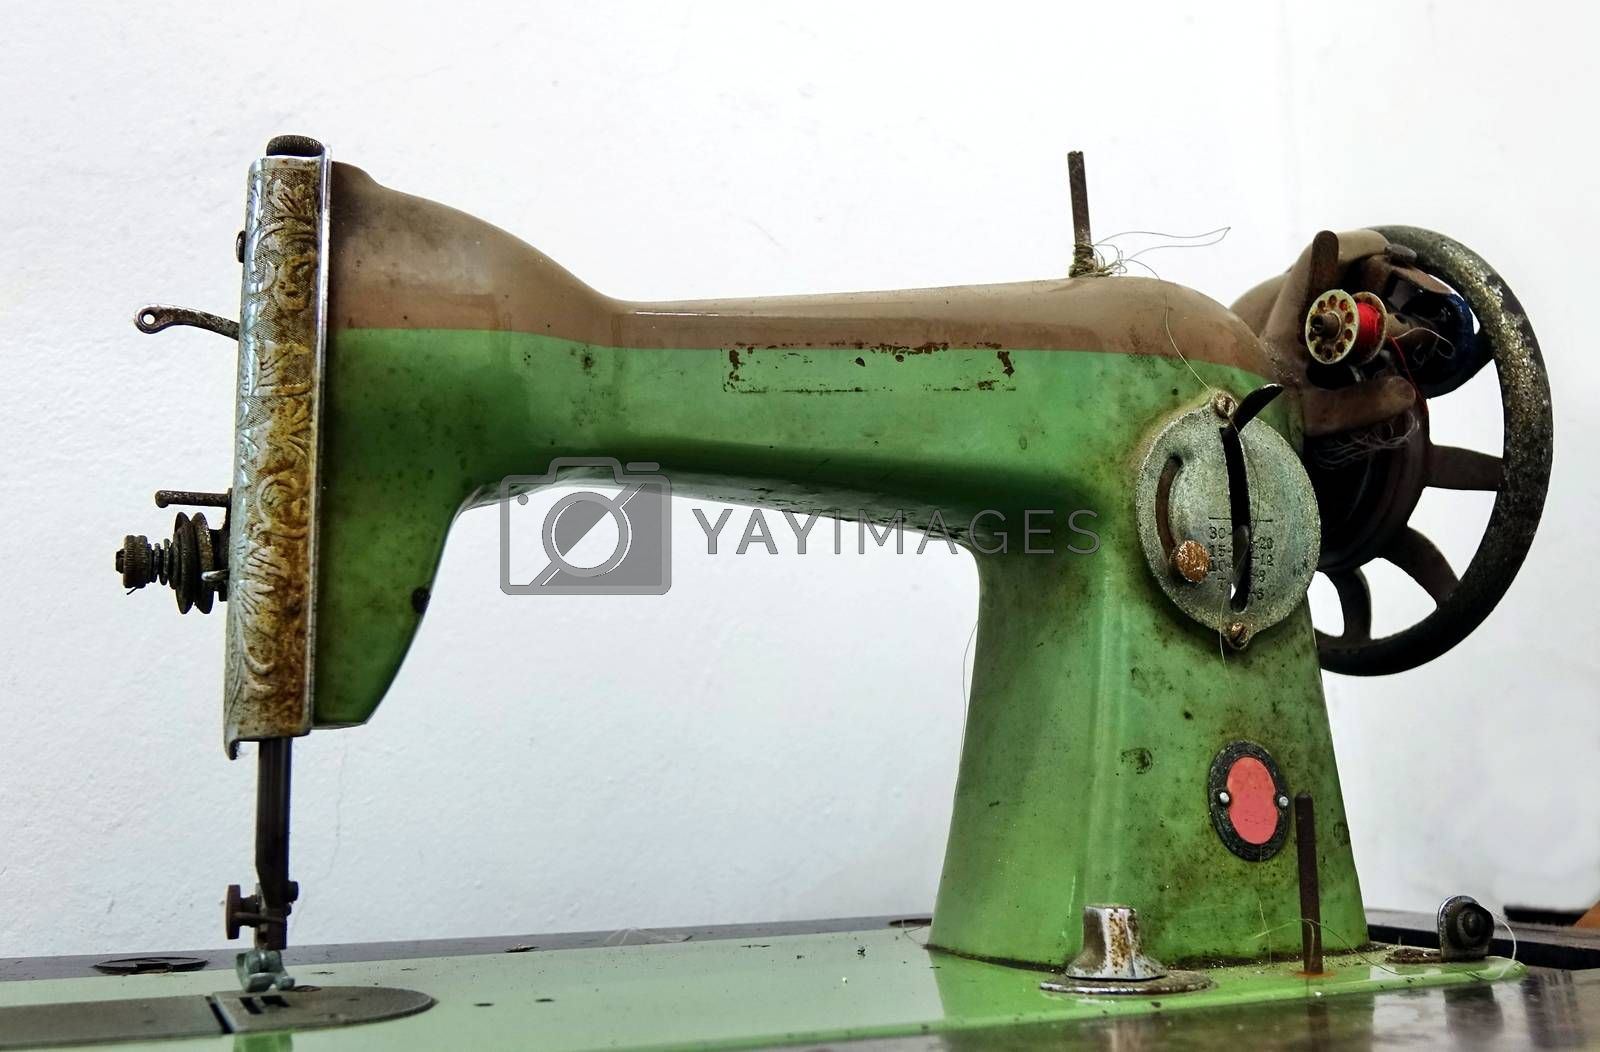 Vintage obsolete sewing machine that is operated by foot